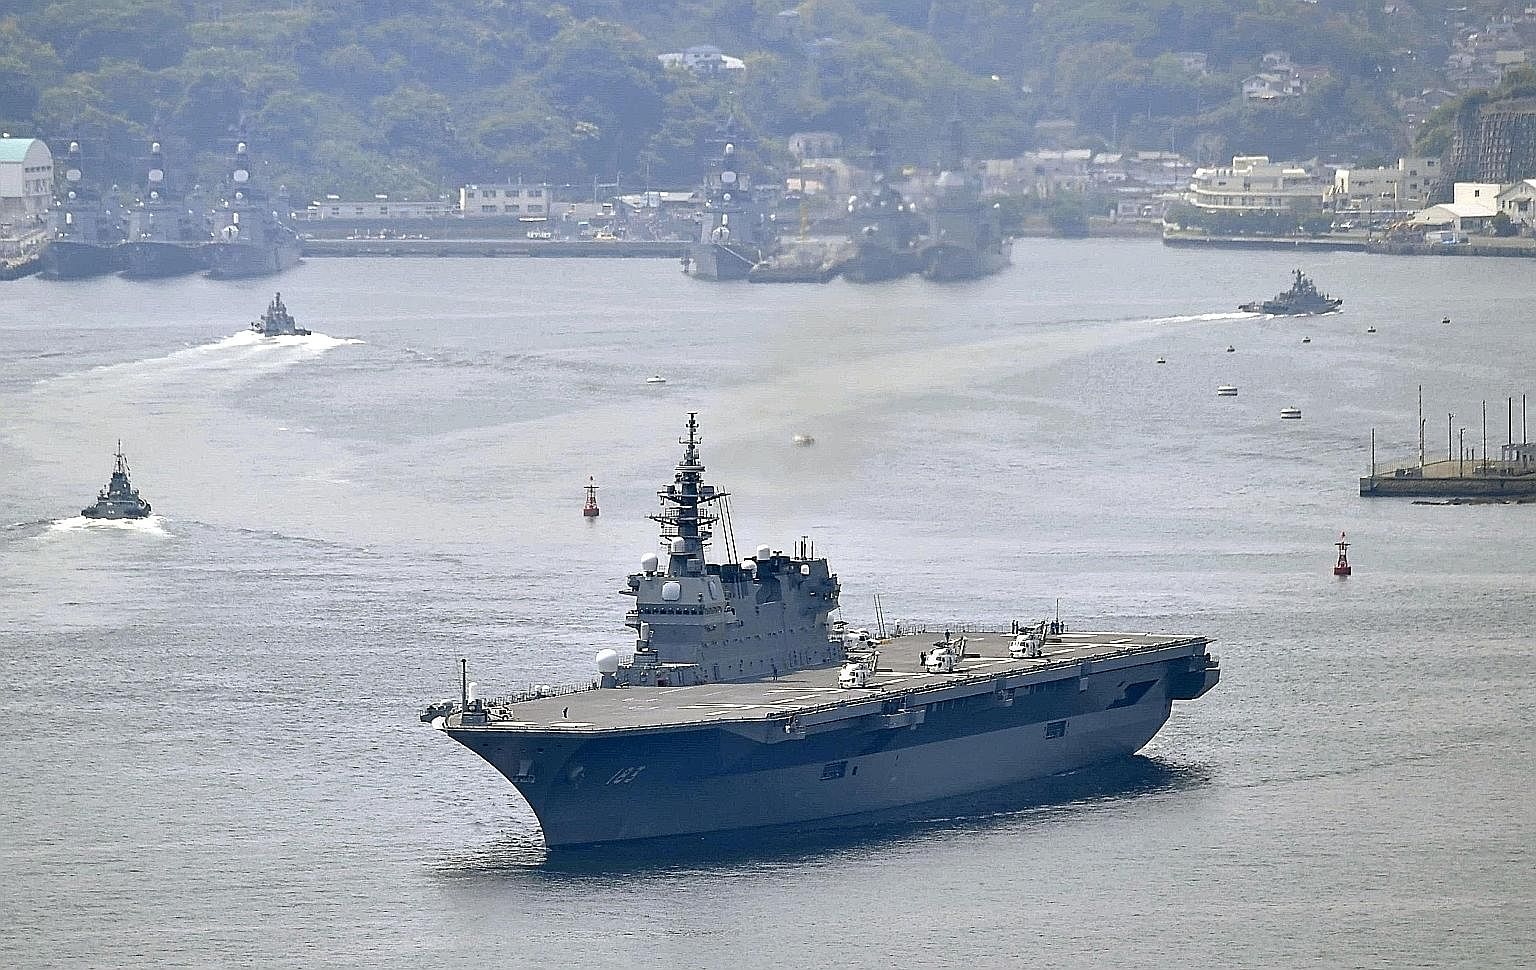 The Izumo leaving Yokosuka base in Kanagawa Prefecture, south-west of Tokyo, on May 1. The warship is on a 100-day voyage, its longest and farthest from Japan, and its first port of call is Singapore.